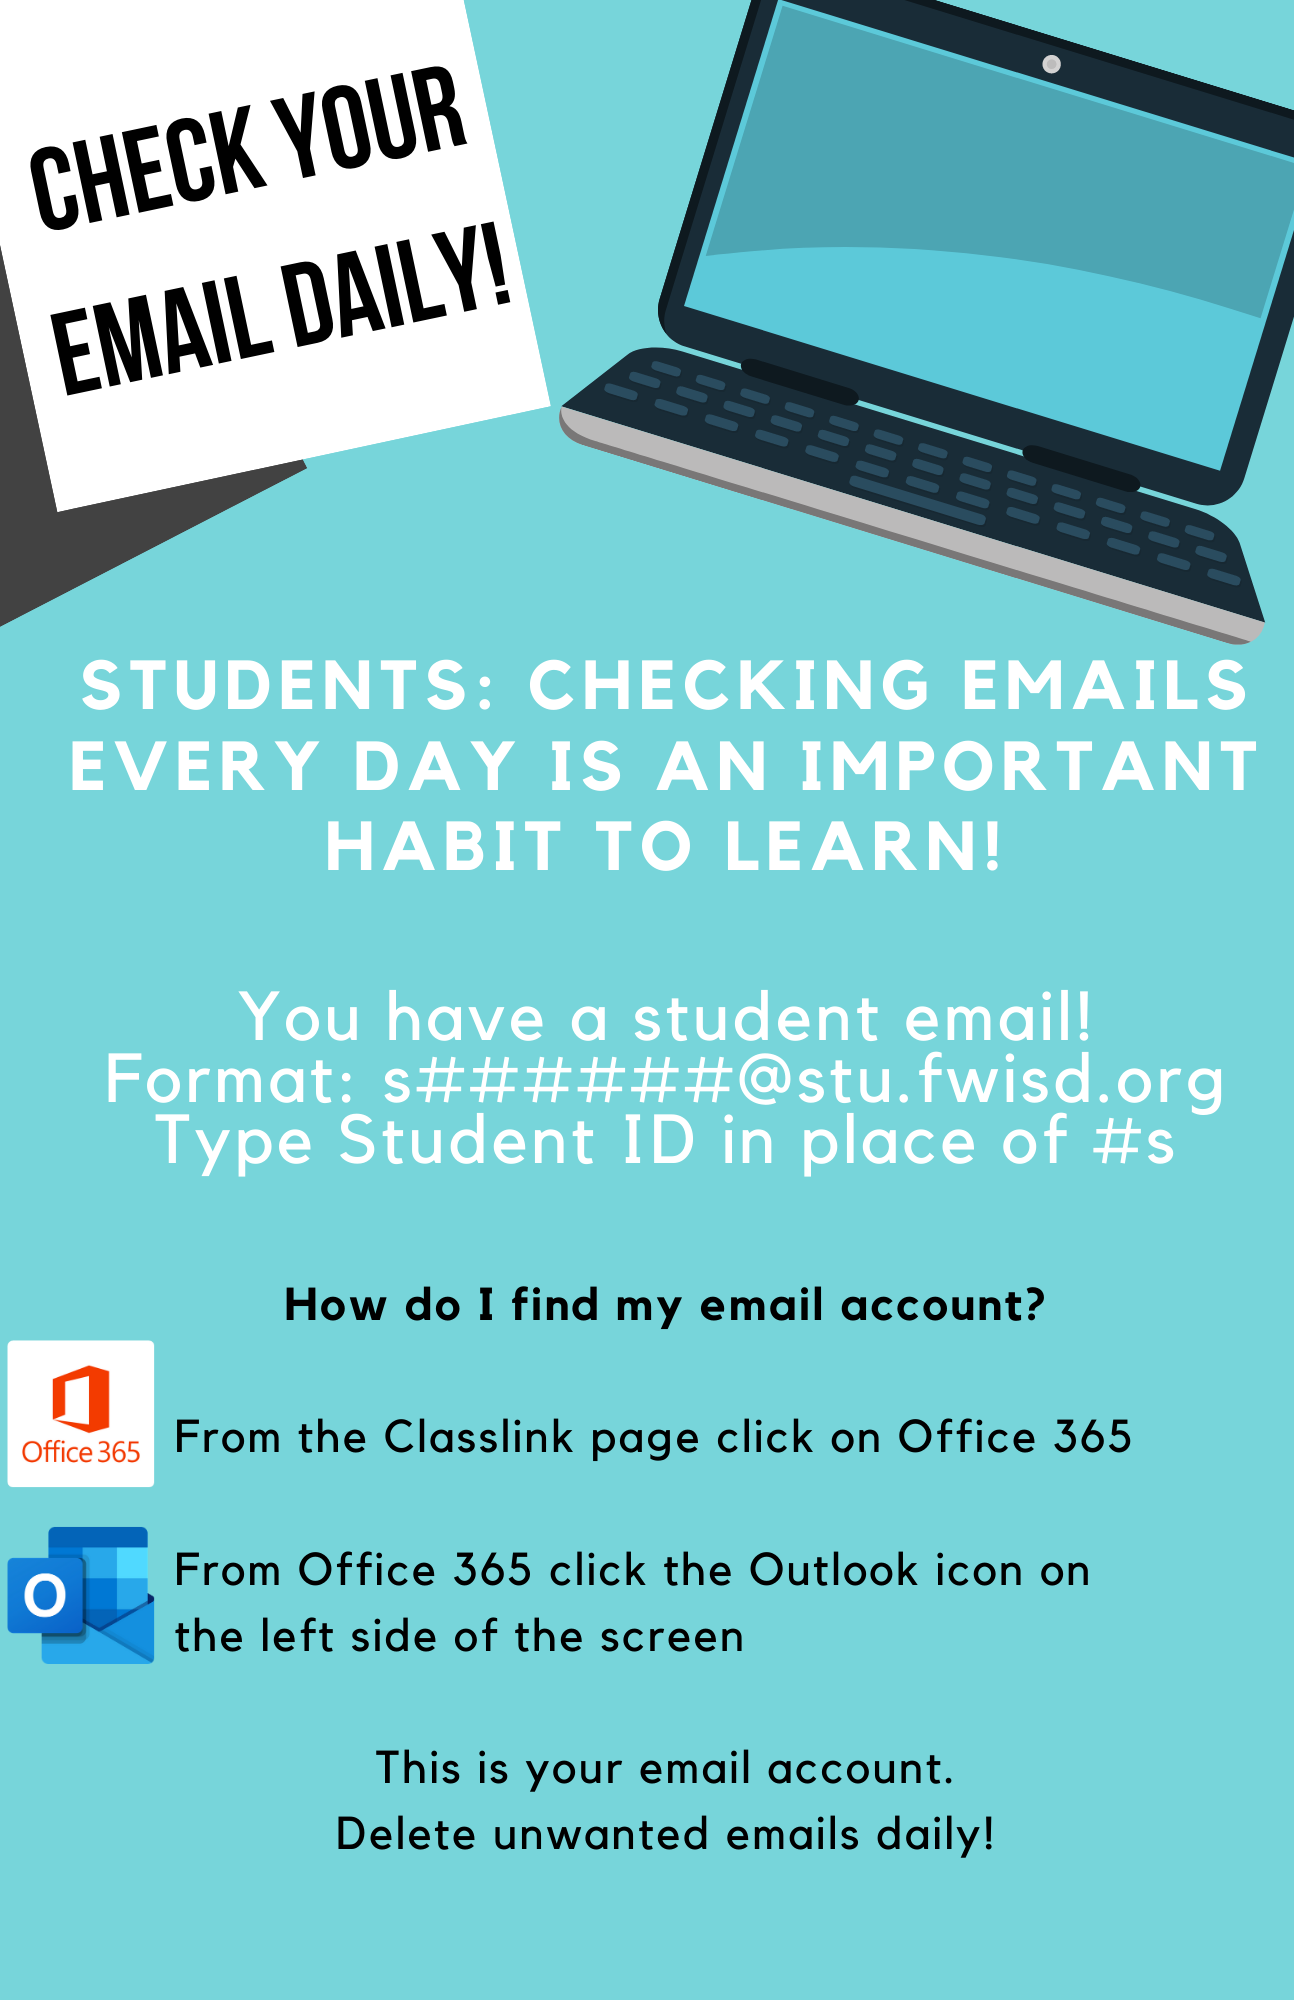 Students: Check Email Daily!